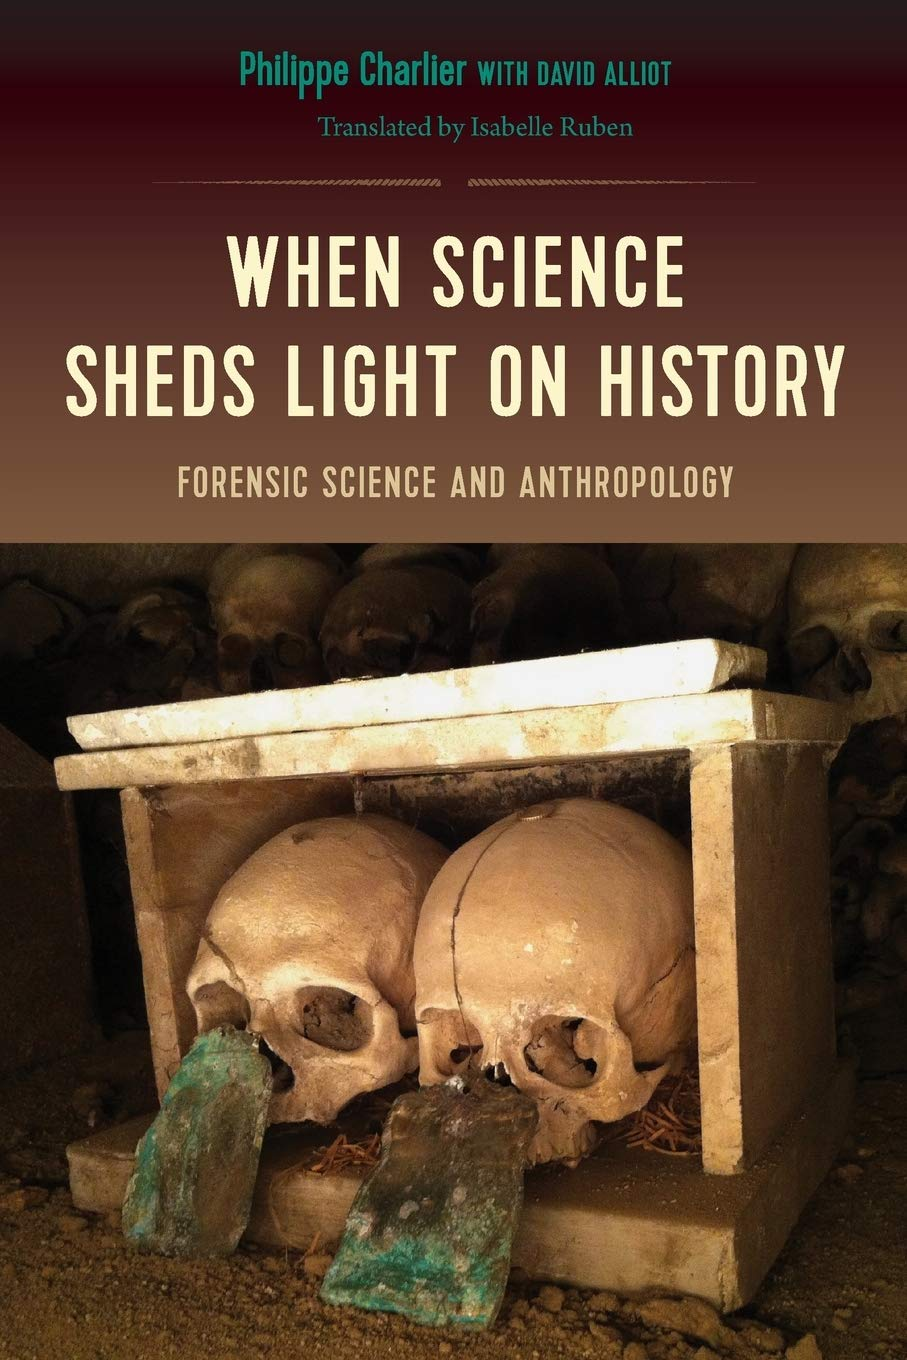 When Science Sheds Light On History Forensic Science And Anthropology Charlier Philippe Ruben Isabelle Alliot David 9780813056548 Amazon Com Books